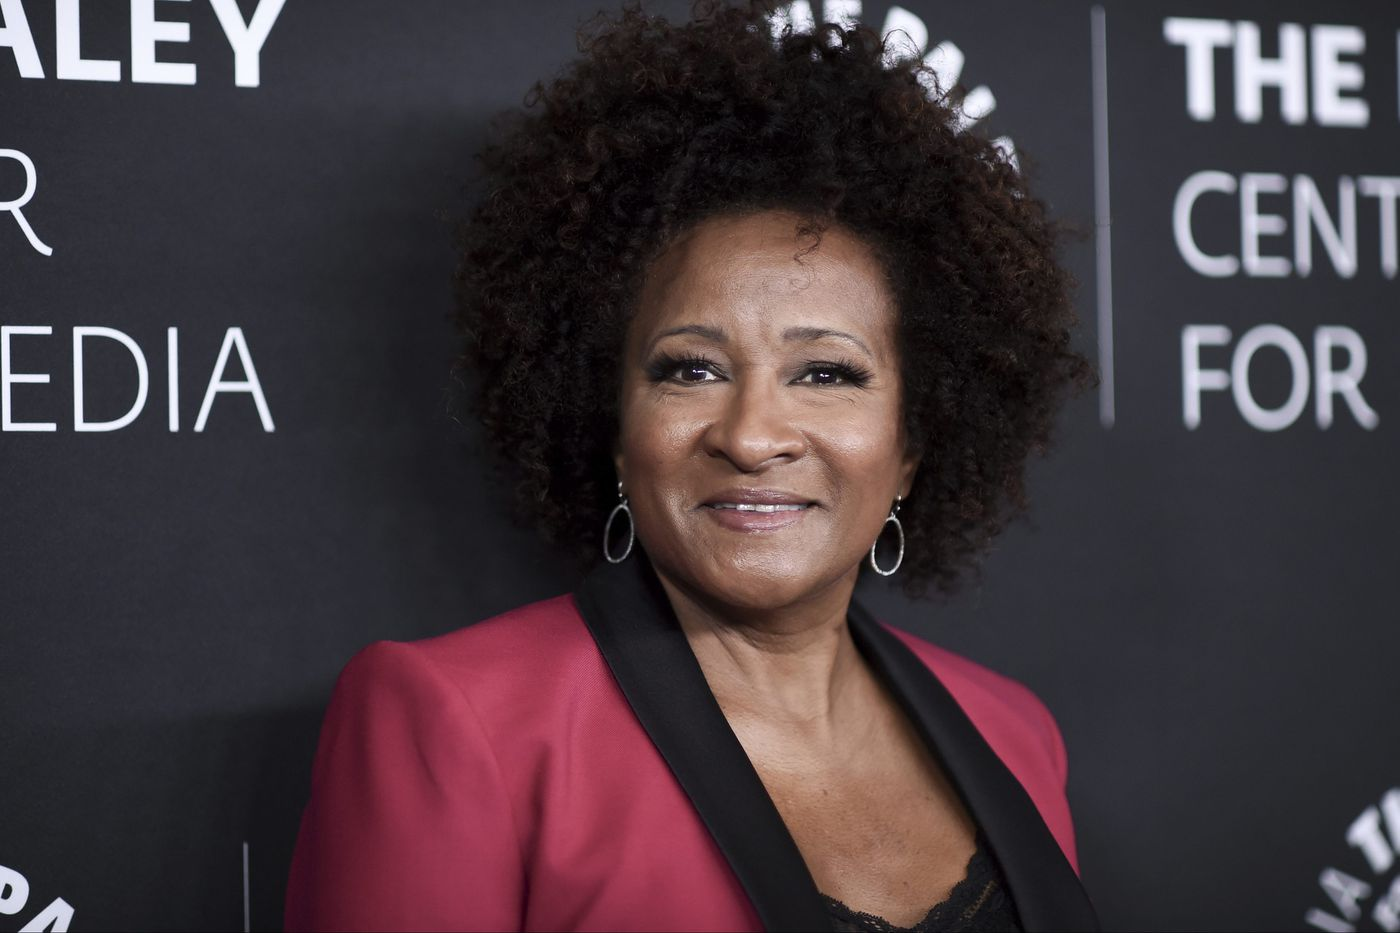 Comedian Wanda Sykes won't say she lives in Media, but that's where she votes